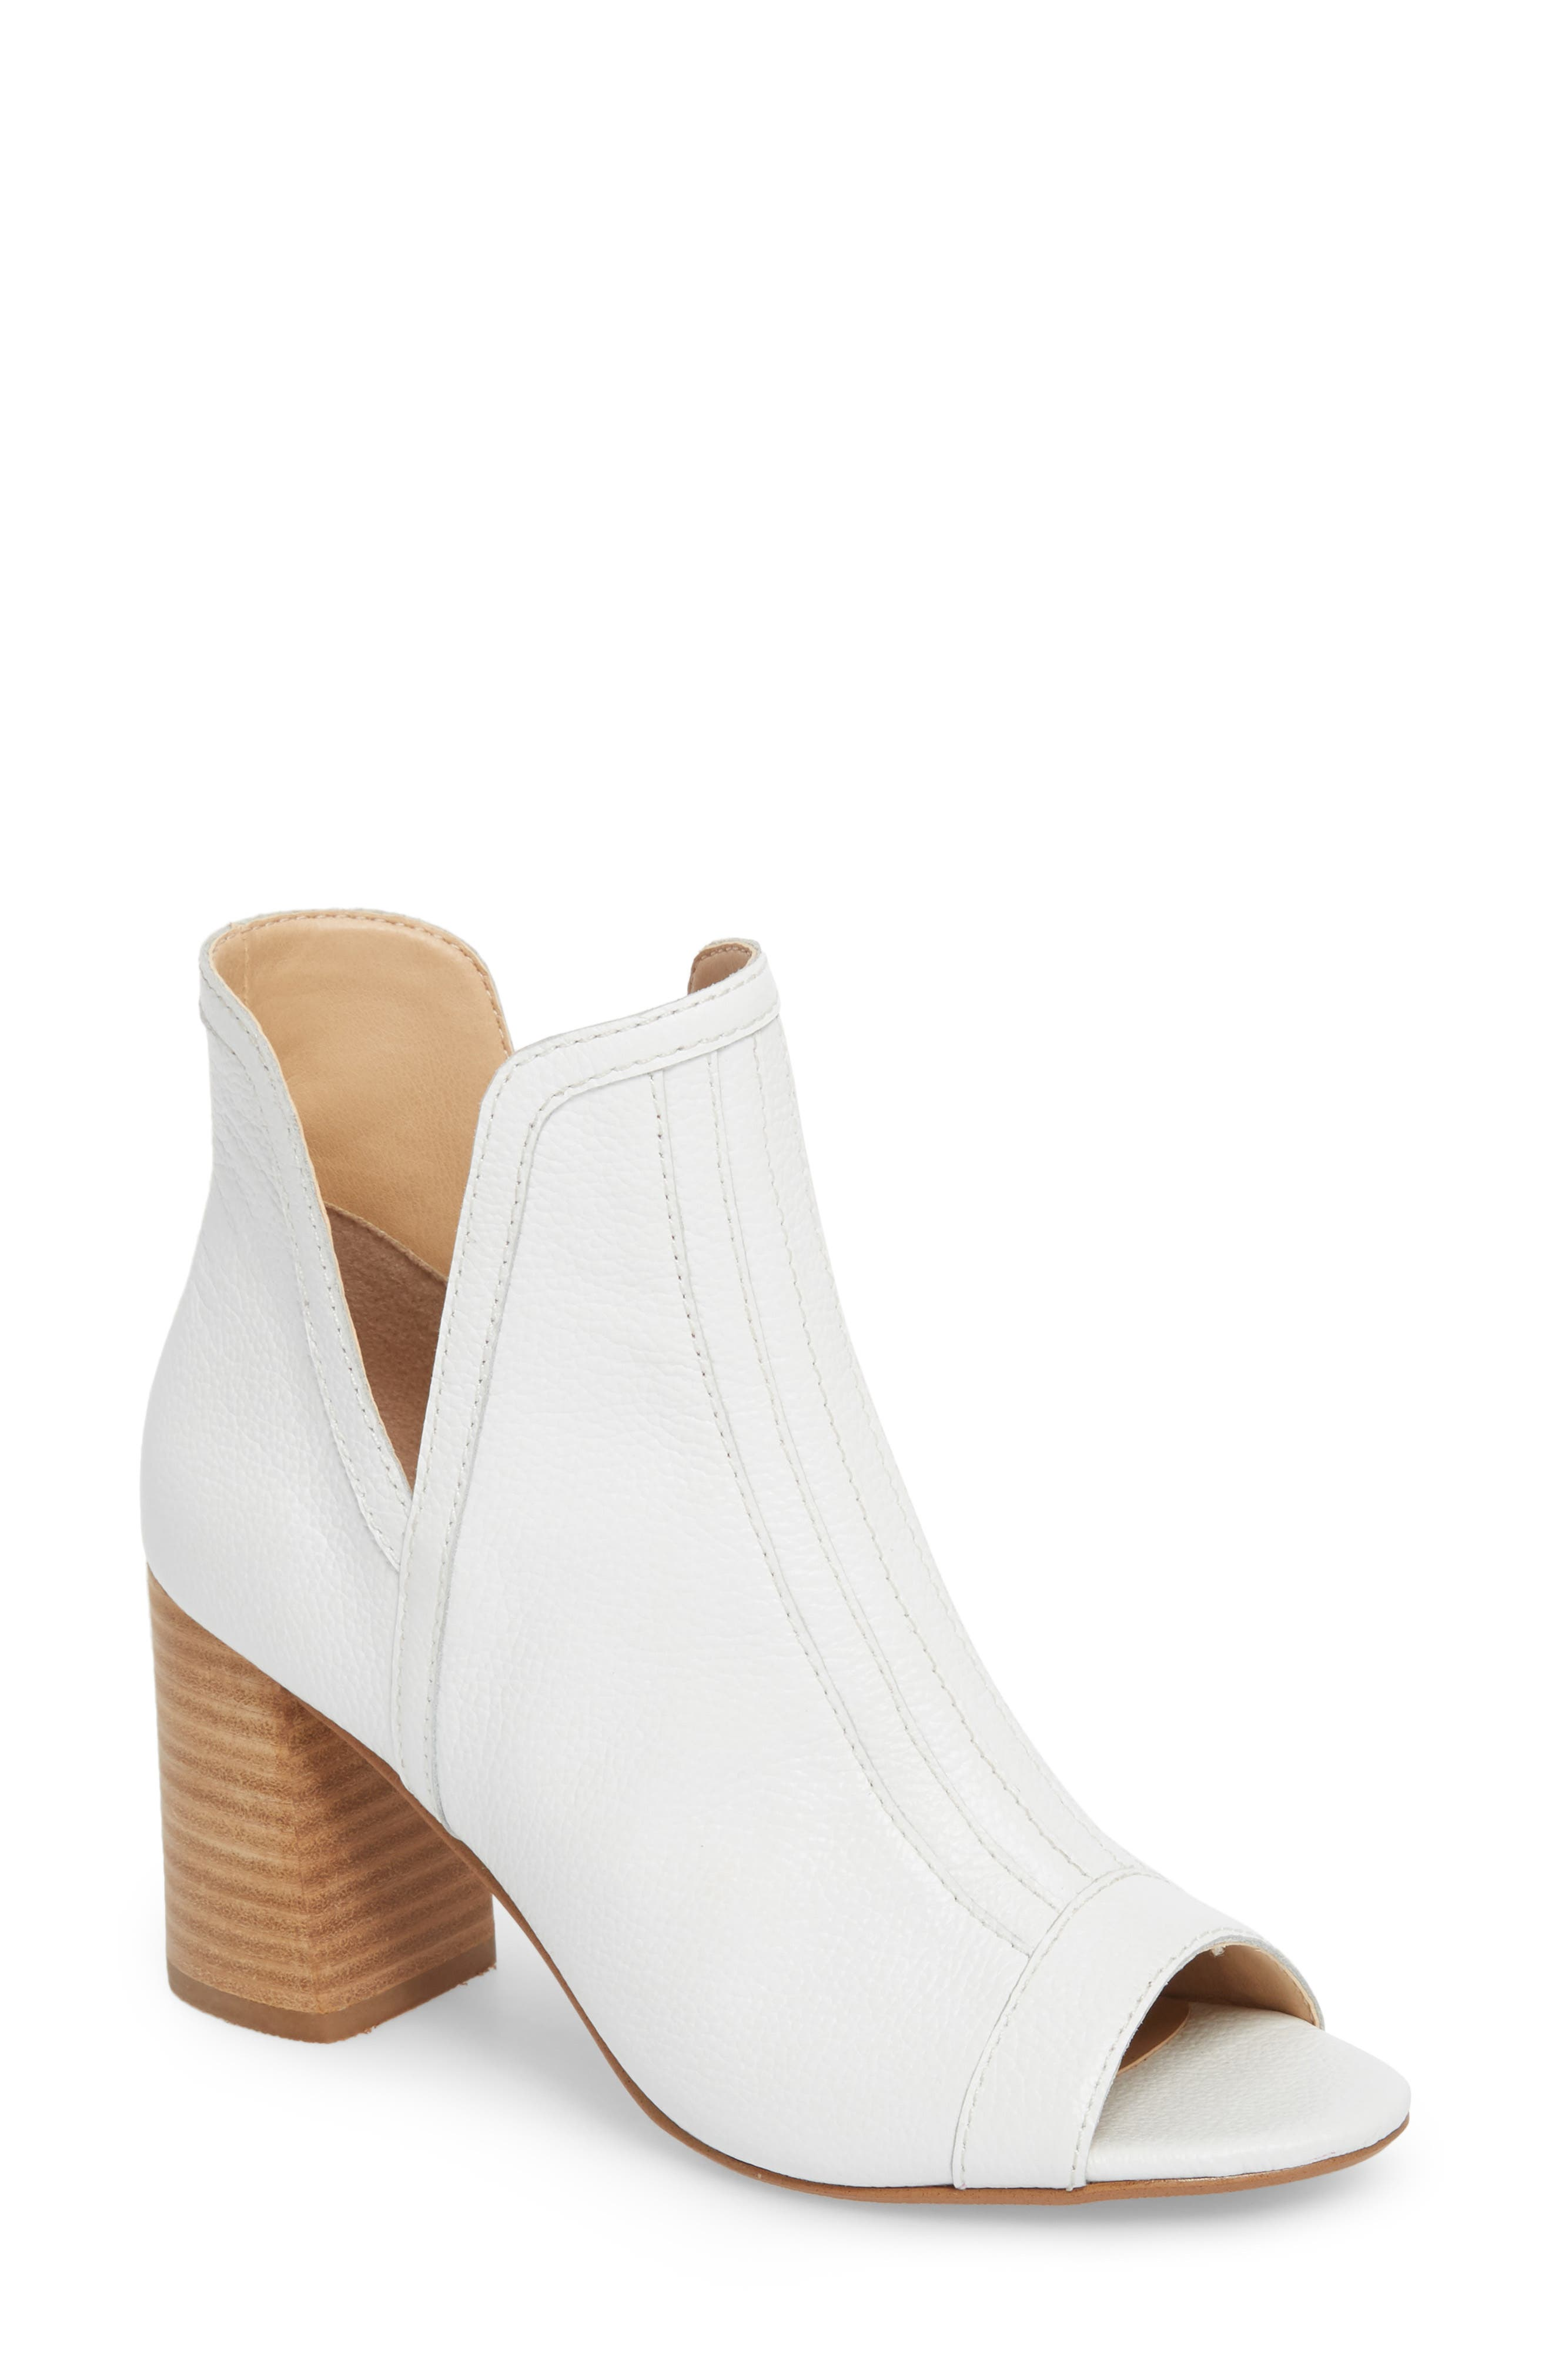 Marla Bootie,                         Main,                         color, WHITE LEATHER